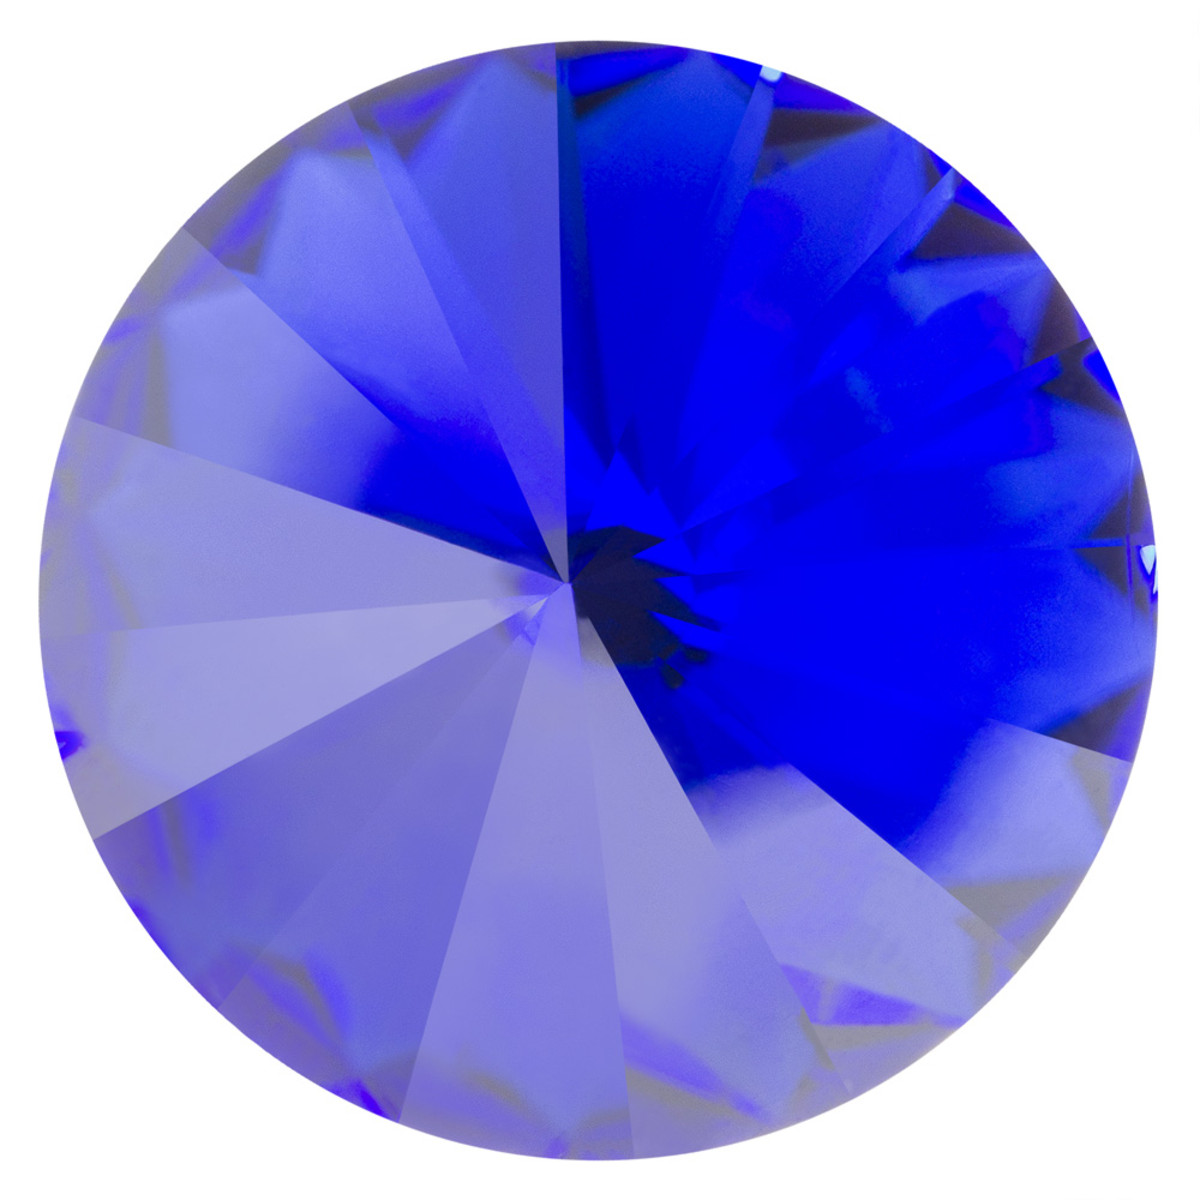 Swarovski Elements Rivolis 8mm Crystal Majestic Blue F 6 Stück